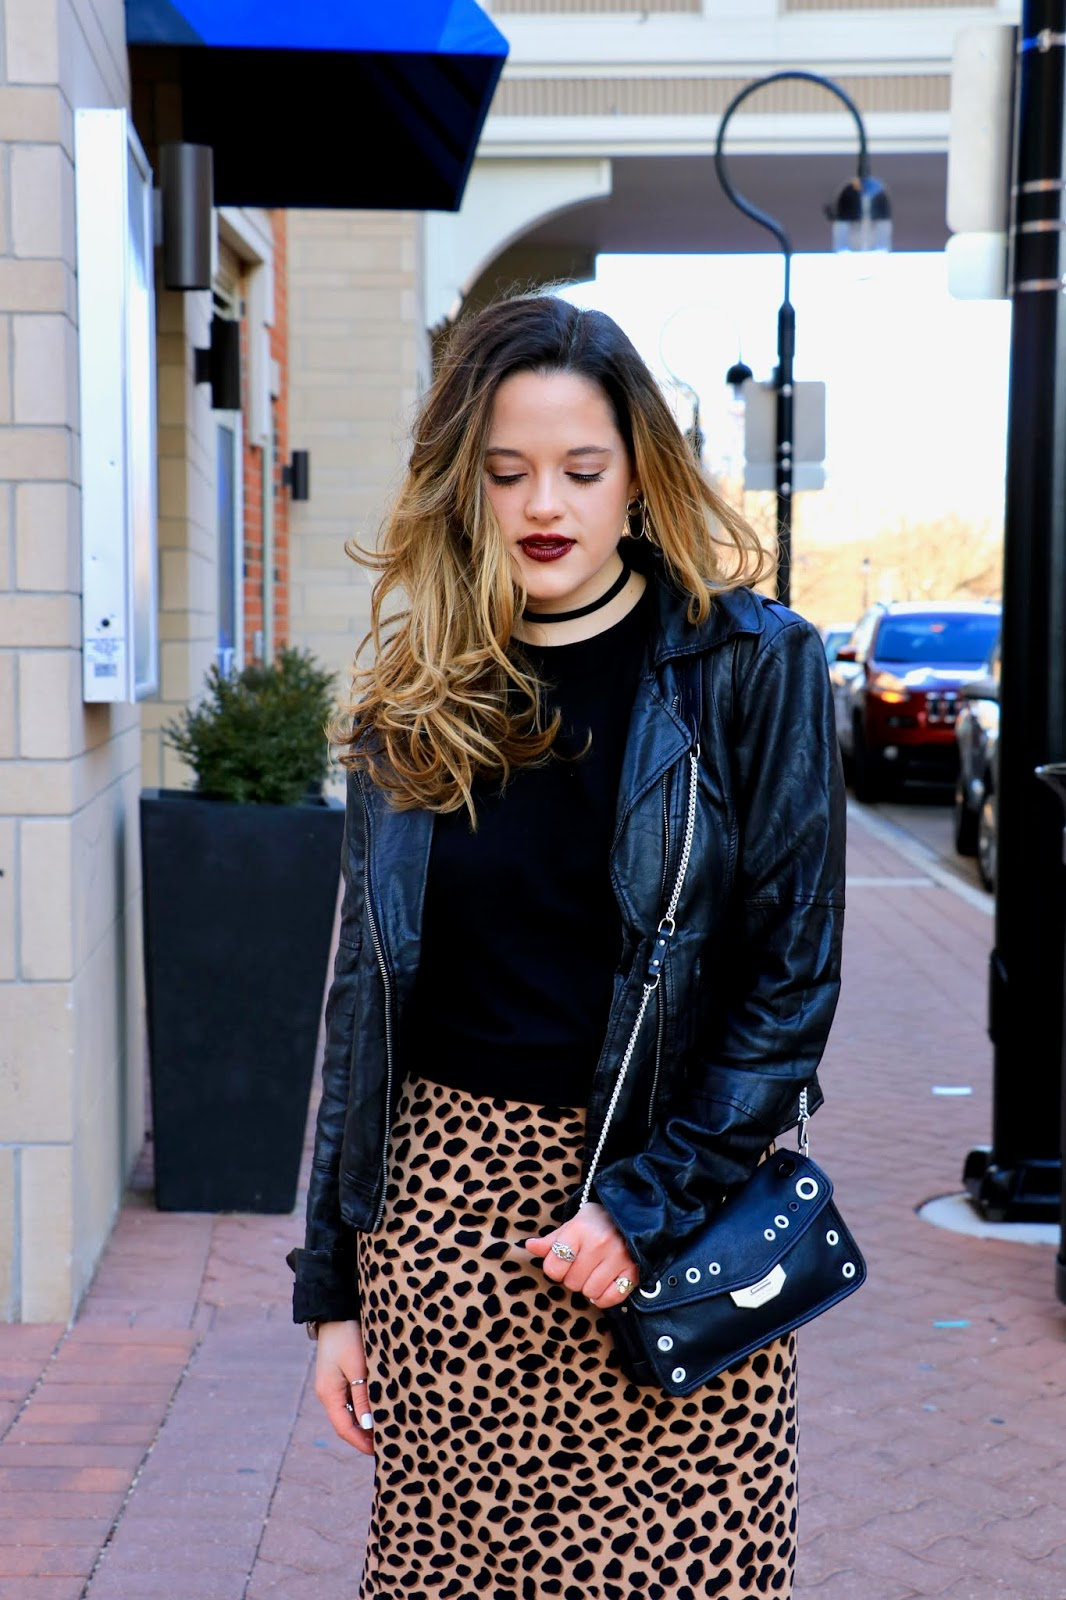 Nyc fashion blogger Kathleen Harper's date night outfit idea